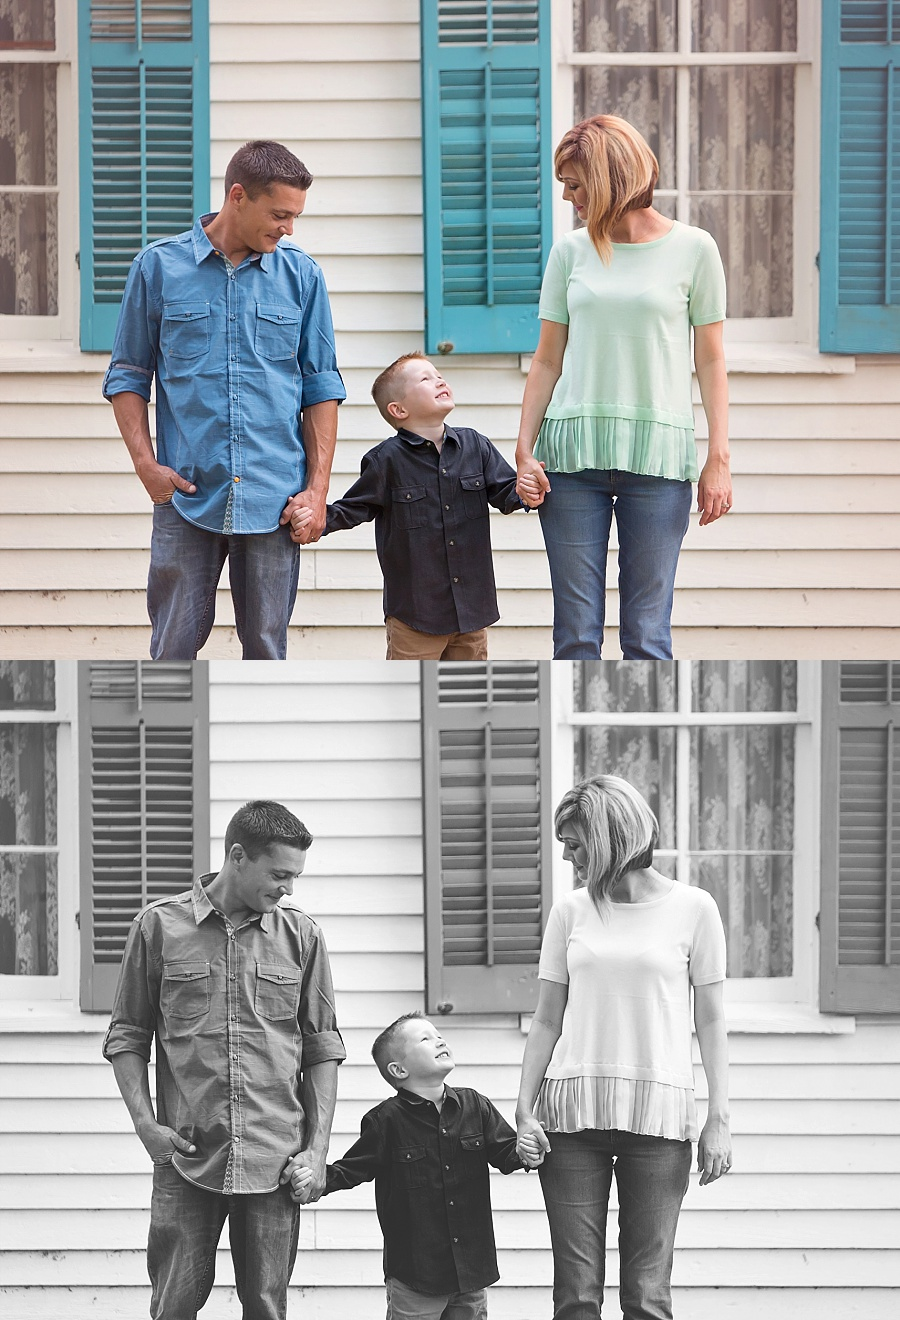 bokeh-canon-family-photographer-top-family-pics-tomball-woodlands-spring-conroe-cypress-77381-77056-77007-77354-77375-77380-77381-77382-77384-77385-77386-77389